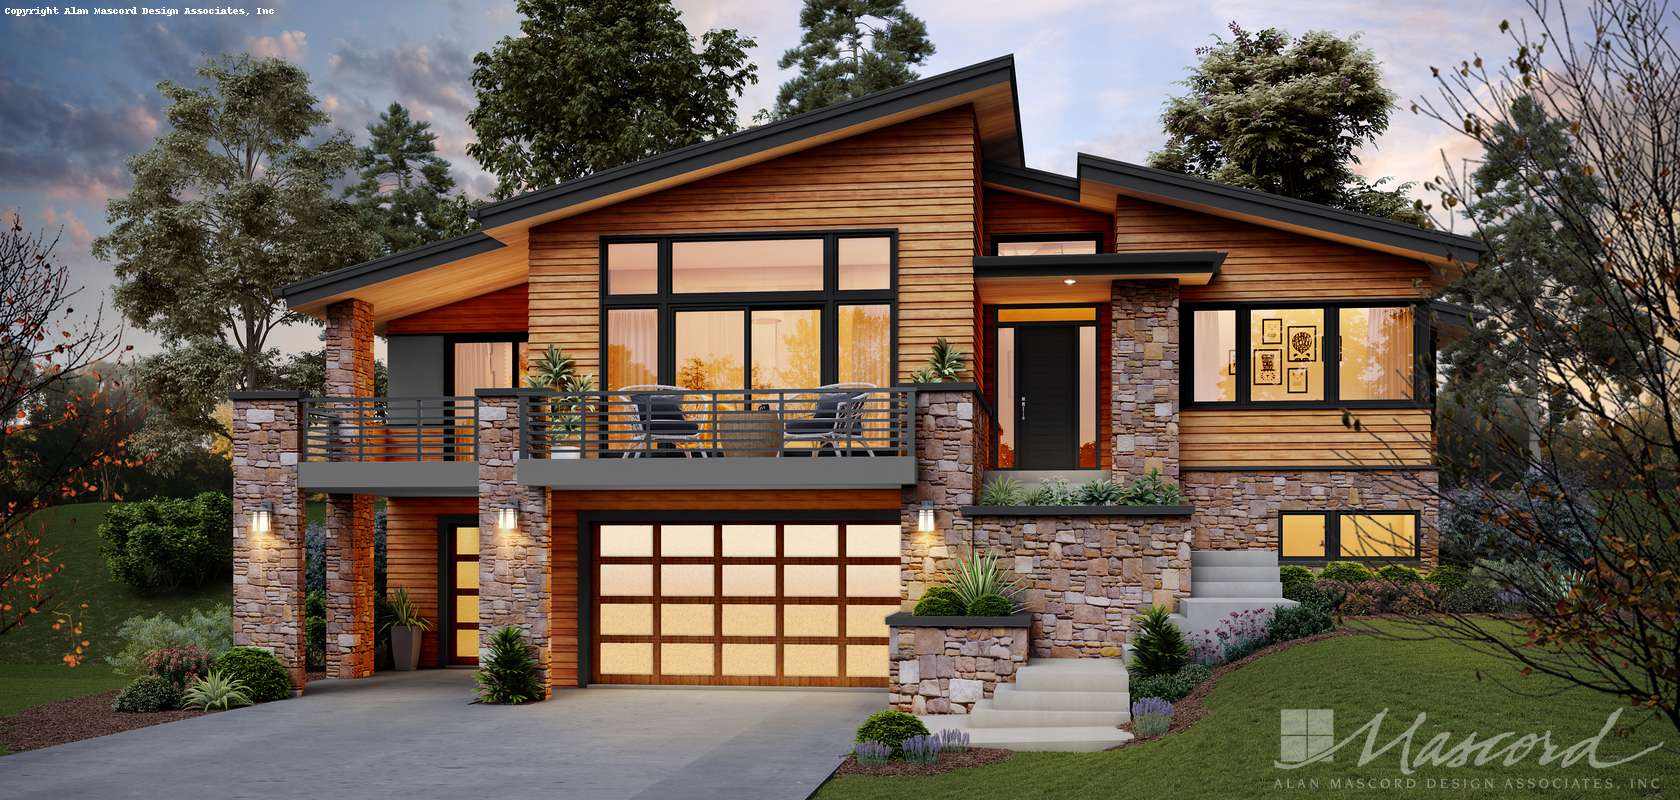 Plans floor custom home. Free clipart simple 3 story house with large bedroom